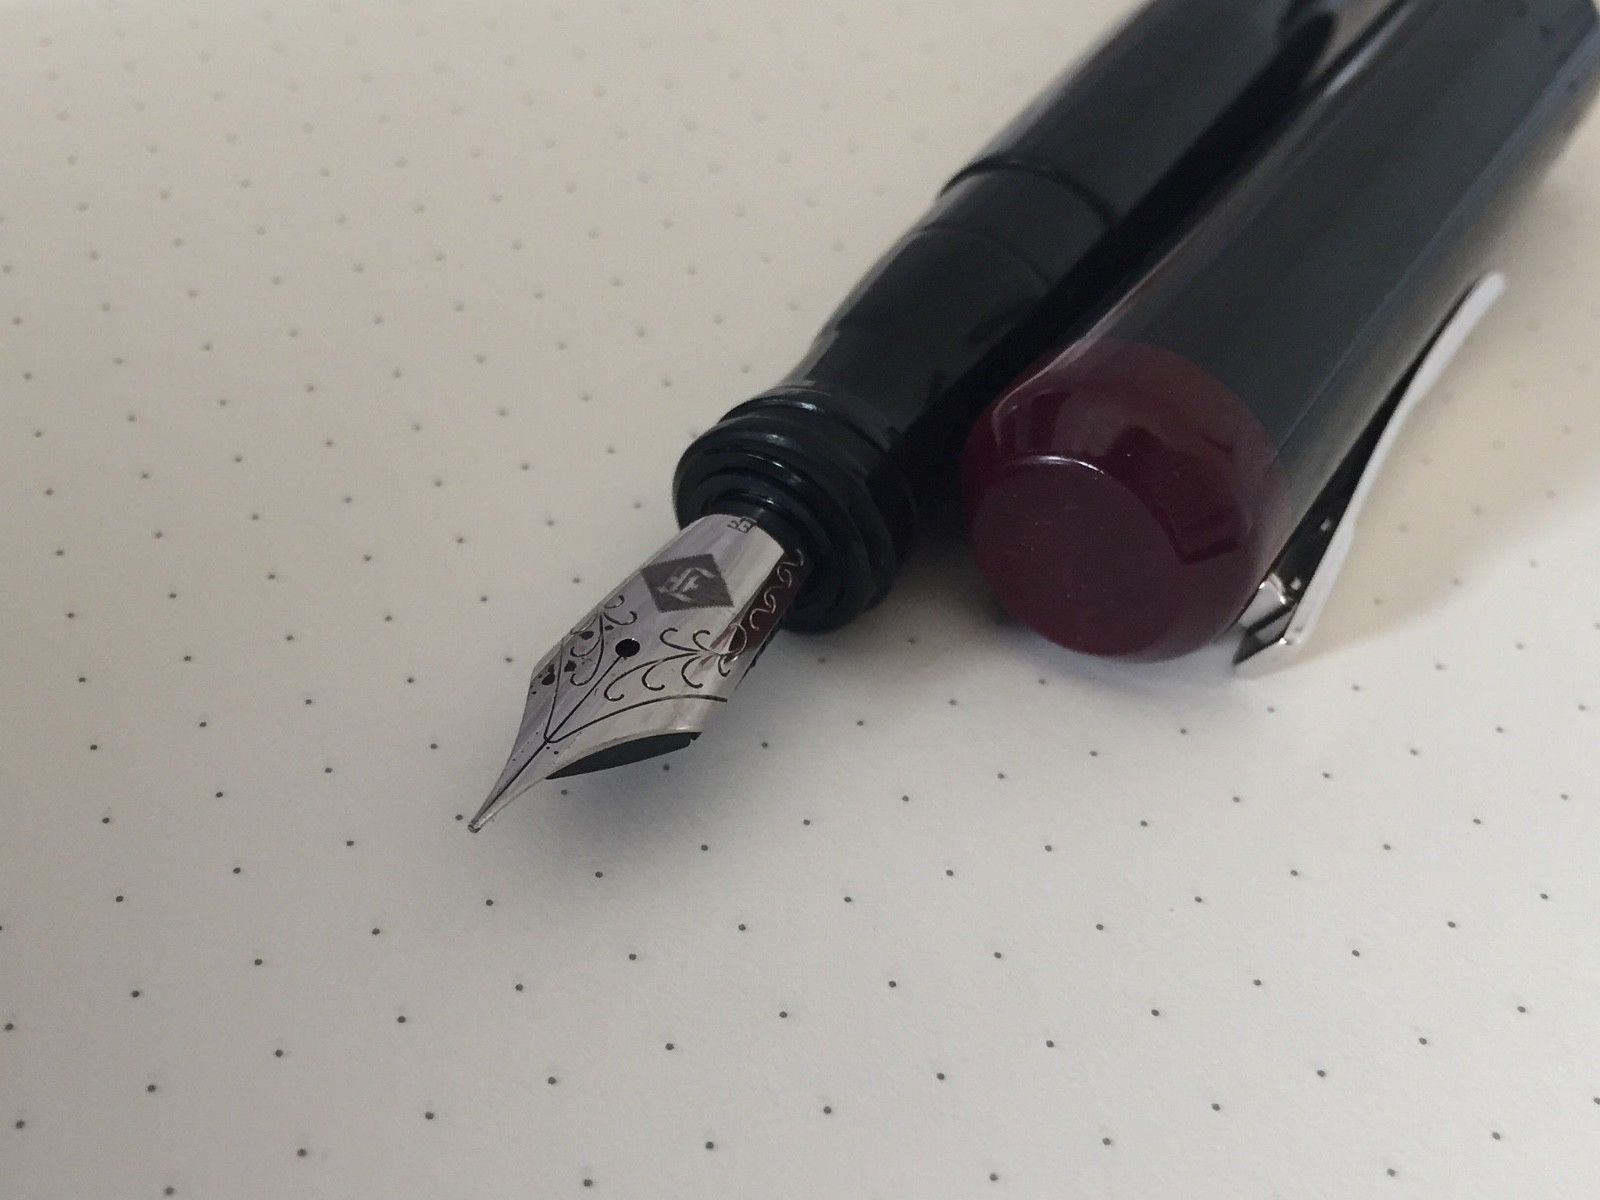 Franklin-Christoph model 02 Intrinsic